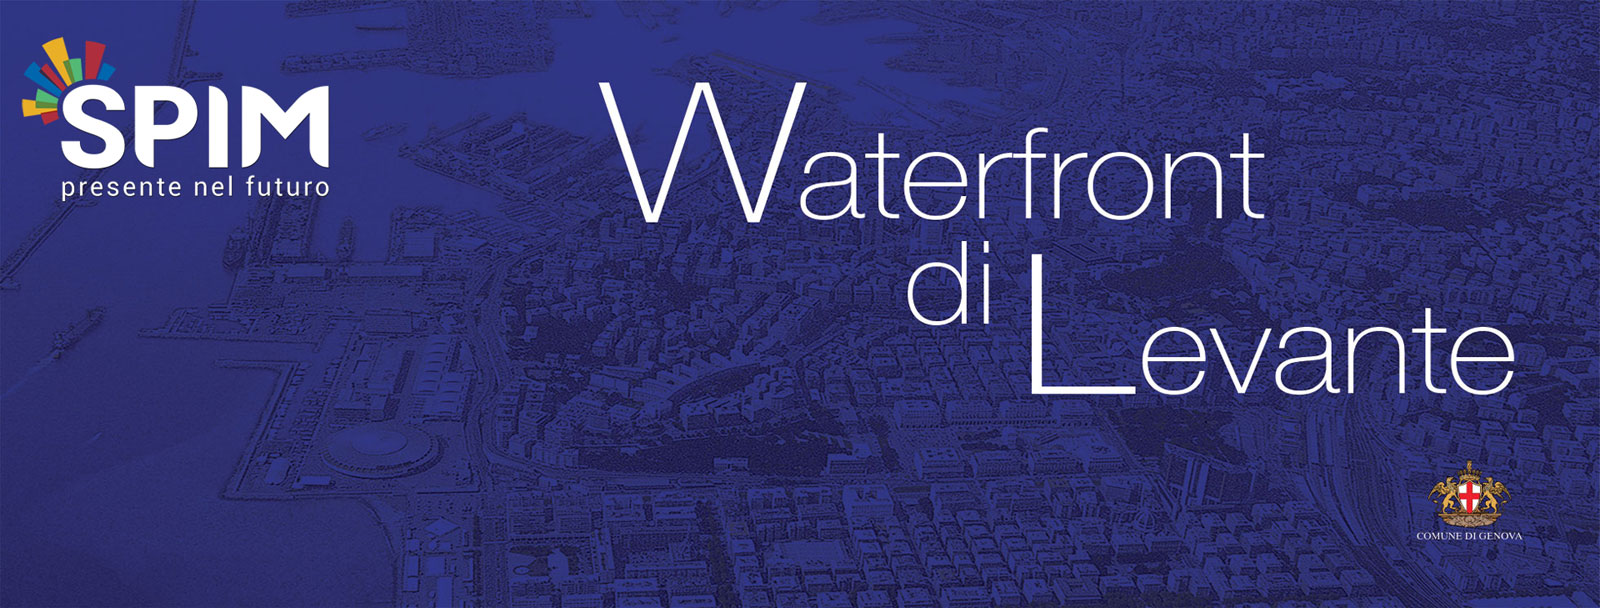 waterfront-di-levante